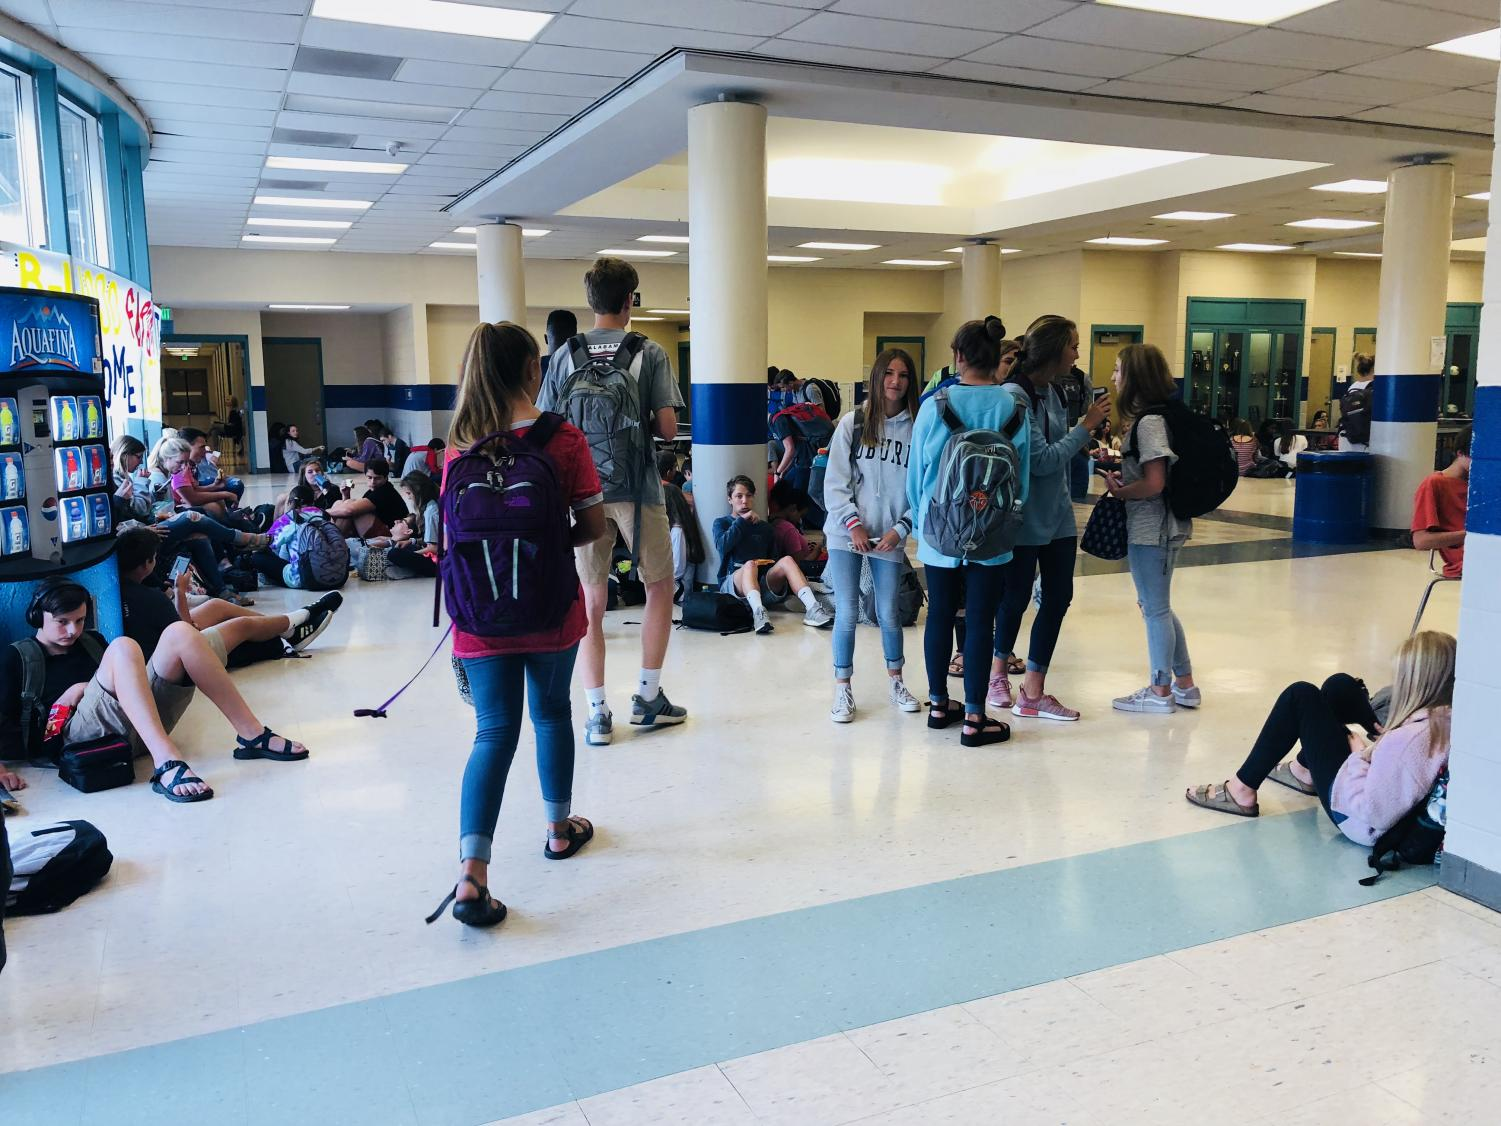 Students walk around the lobby in search of their friends and a place to sit.